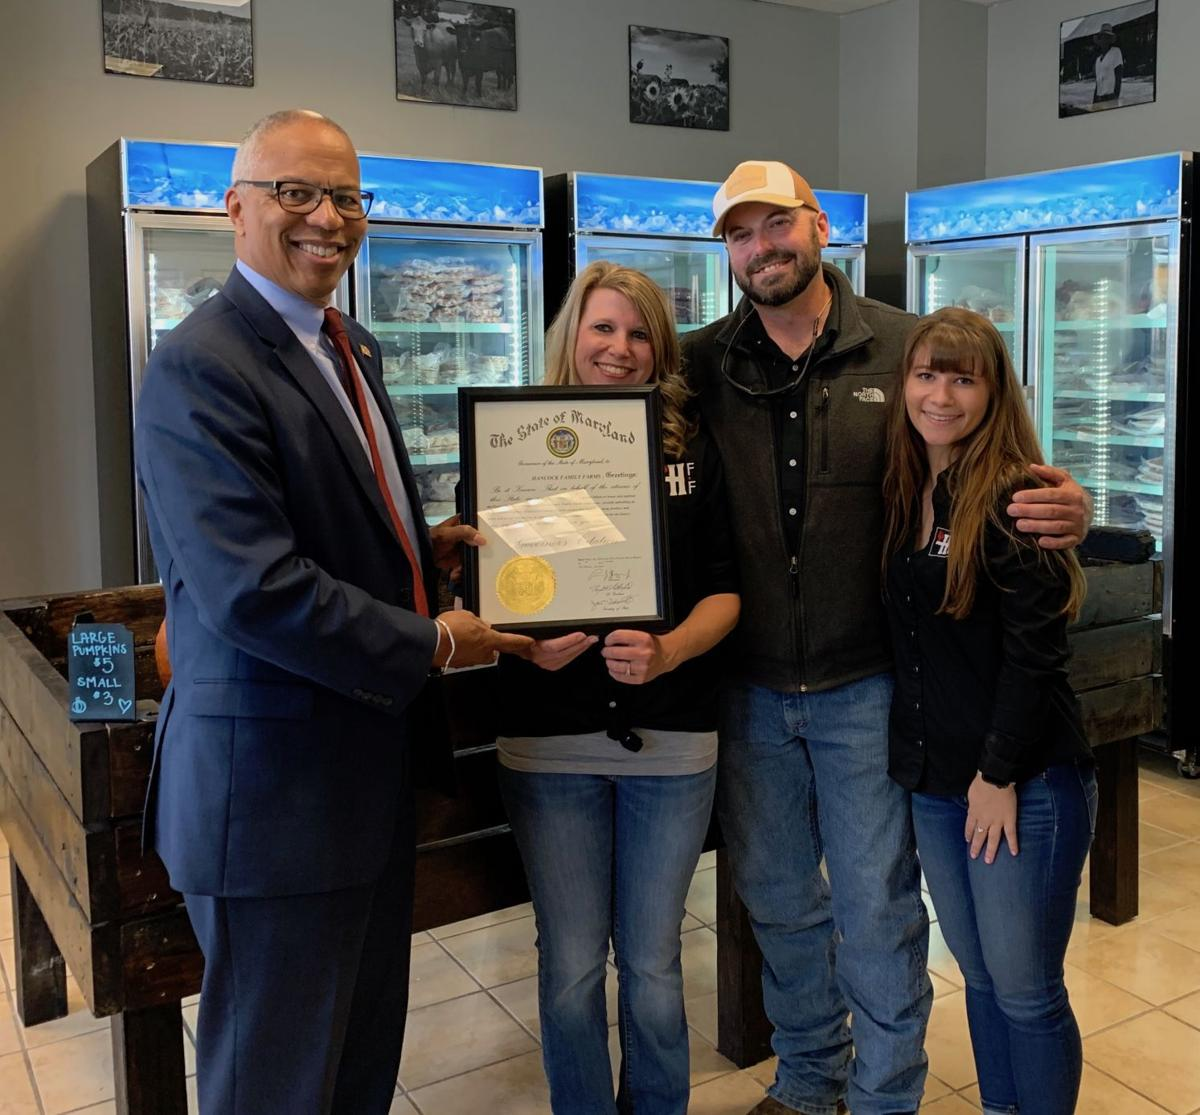 Lt. Gov. Boyd Rutherford presents award citations to La Plata businesses